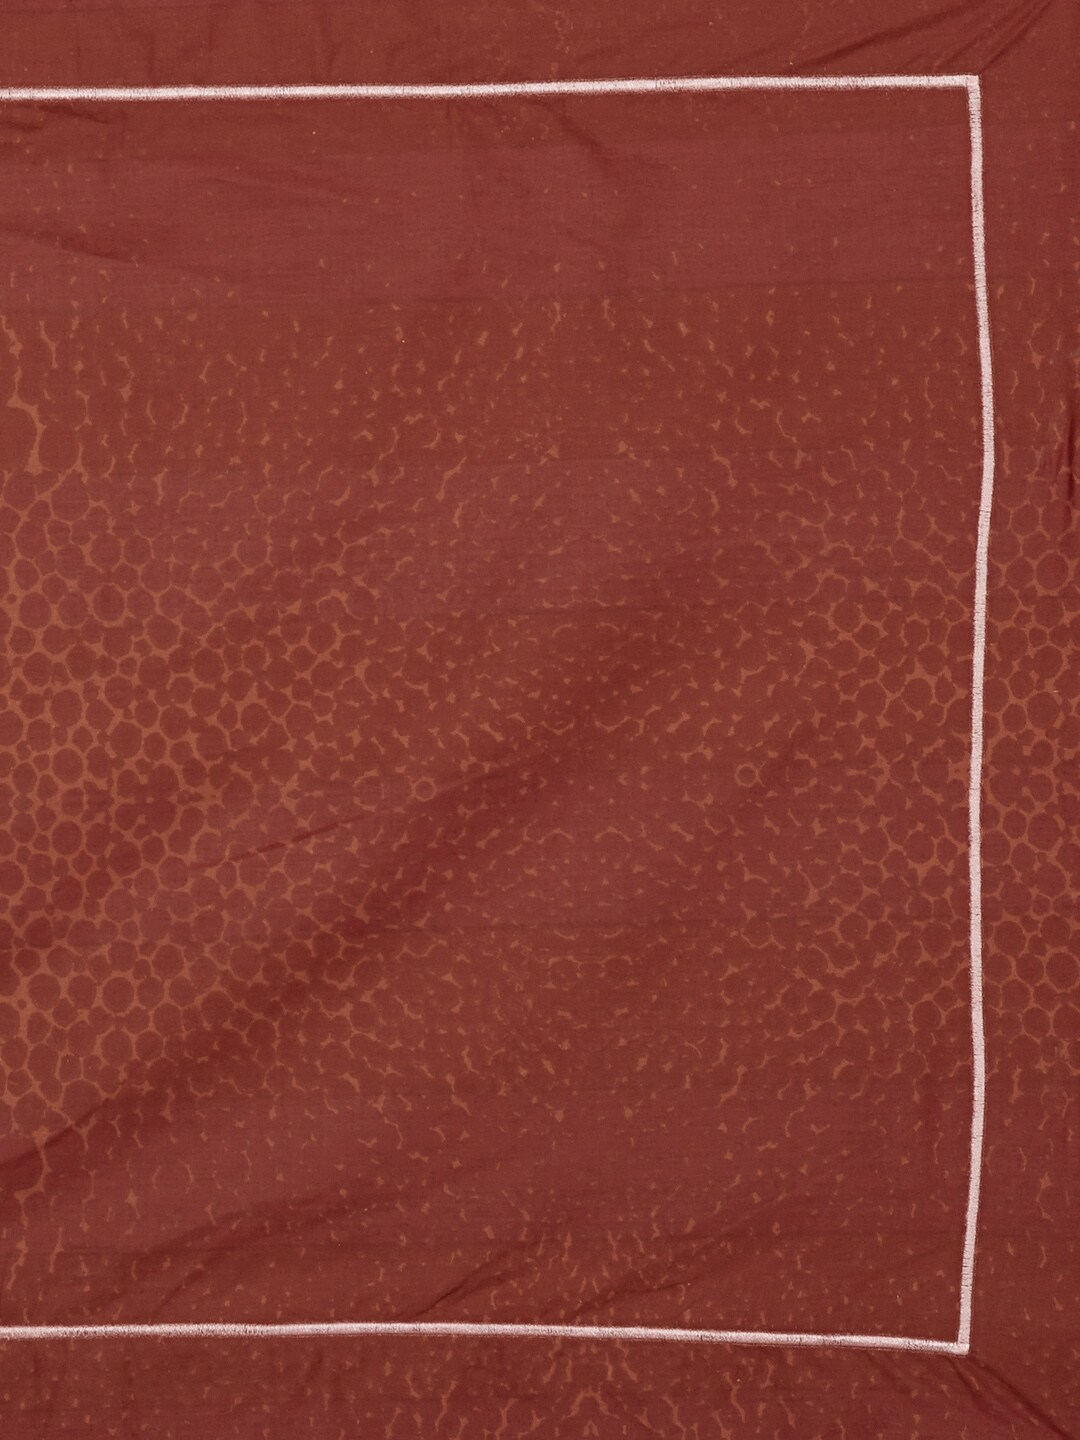 Brown bed sheet textures - Brown Bed Sheet Textures 54